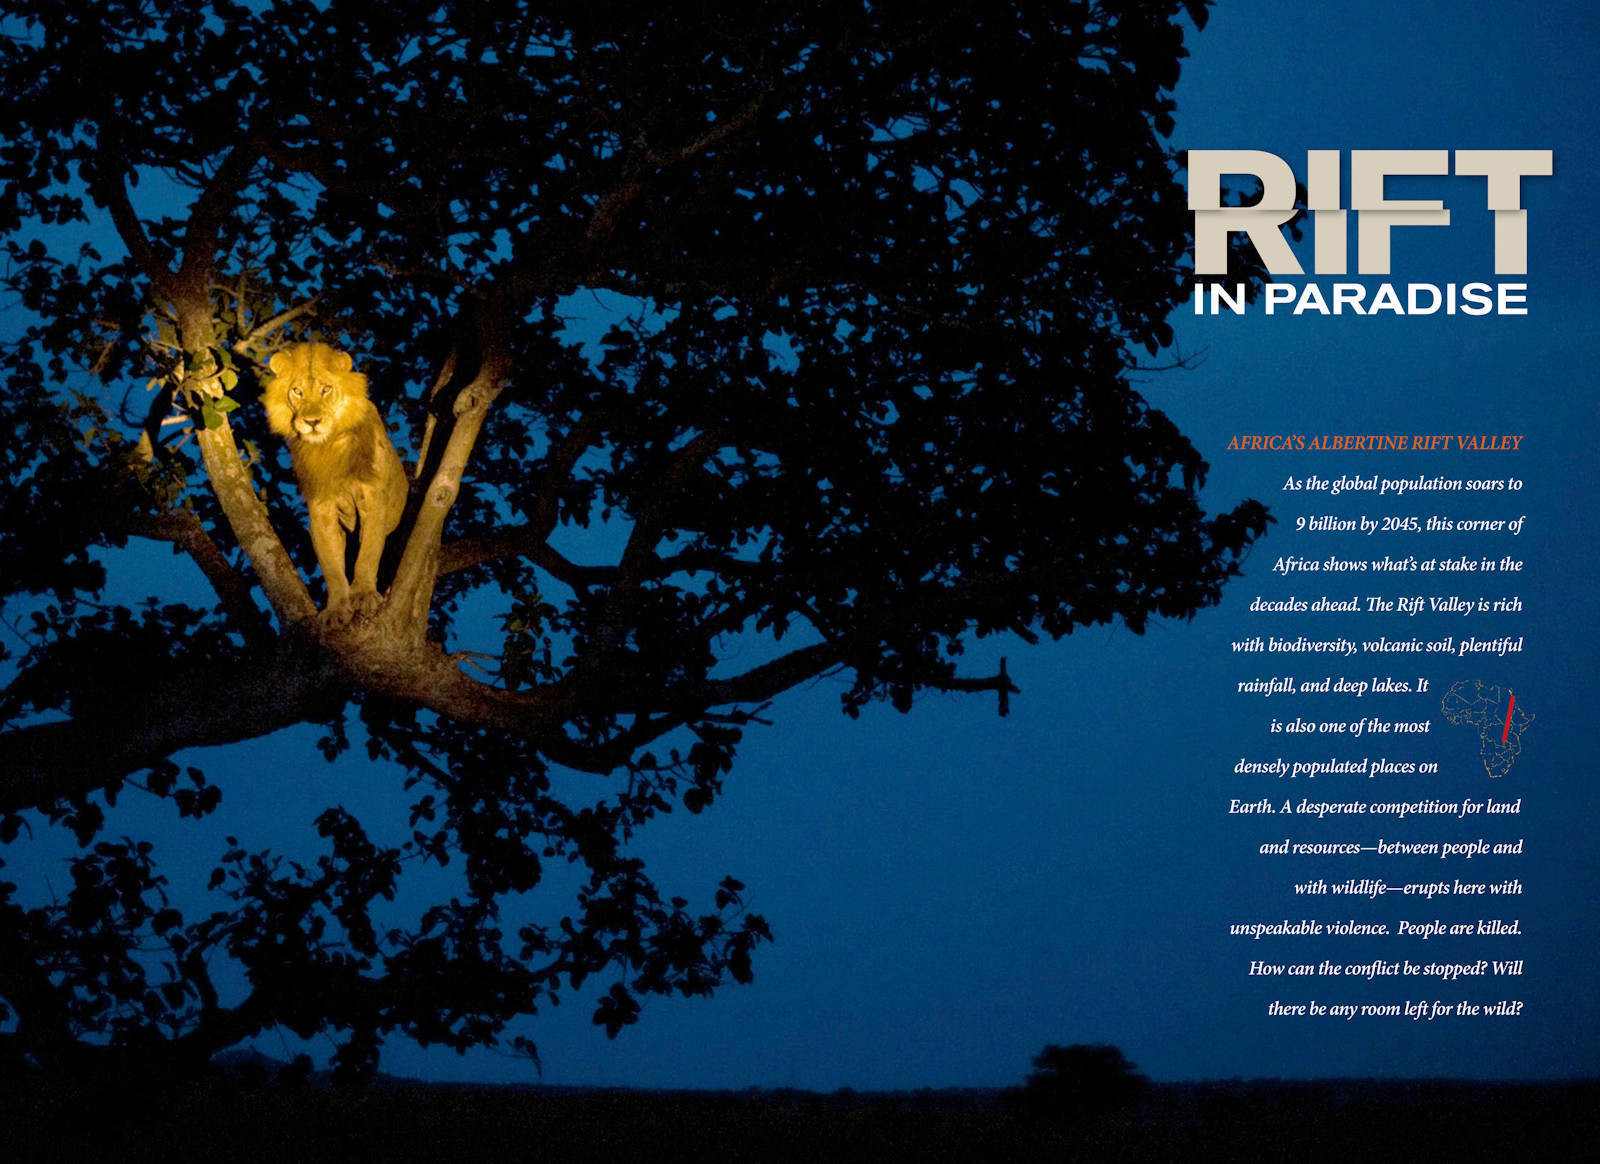 Photo: The opening spread of the Albertine Rift article, from the November, 2011 issue of National Geographic magazine